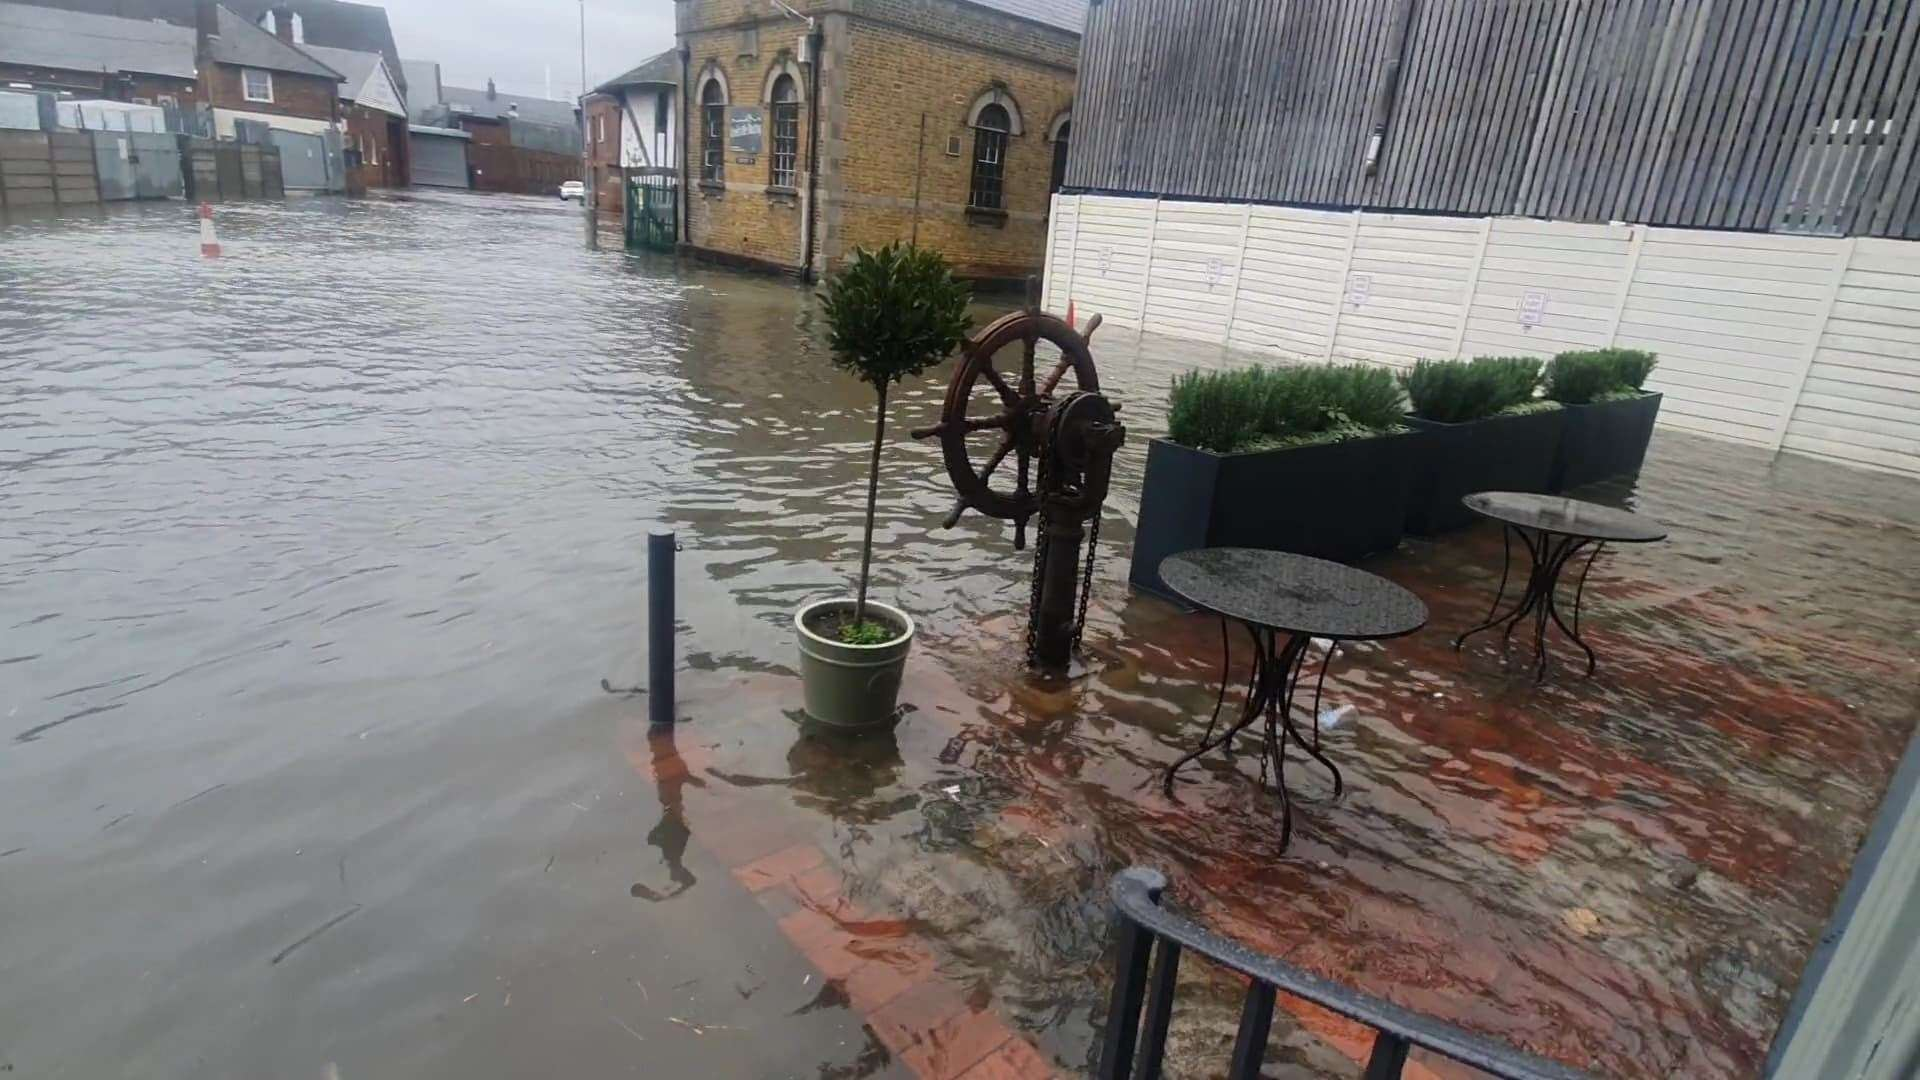 Water has reached The Quay restaurant in Faversham